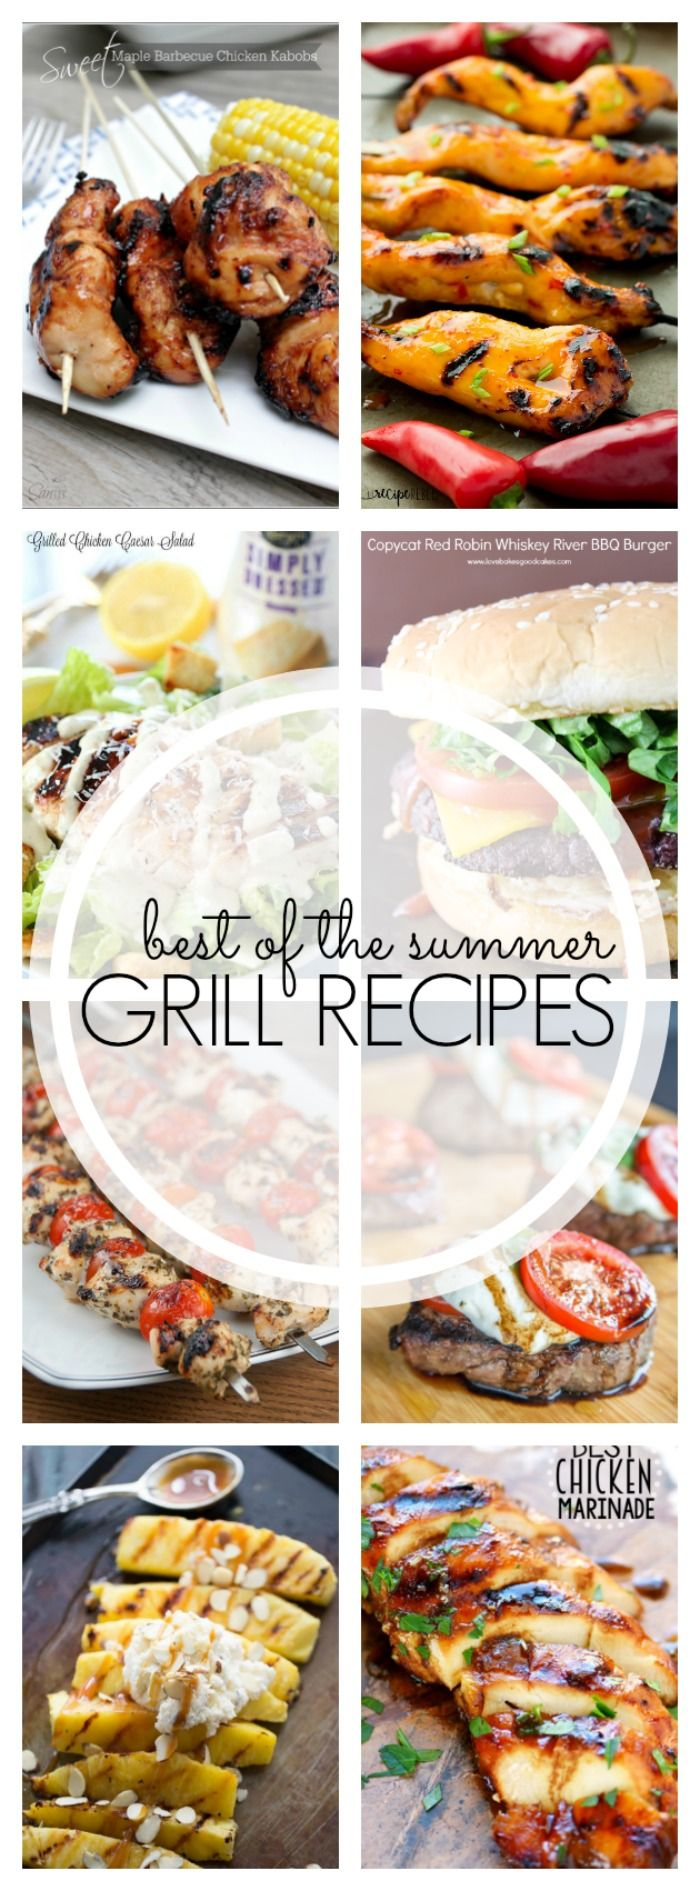 From spiraled hot dogs to chicken skewers and grilled salads to the perfect cheeseburgers, here are some of the best of summer grill…